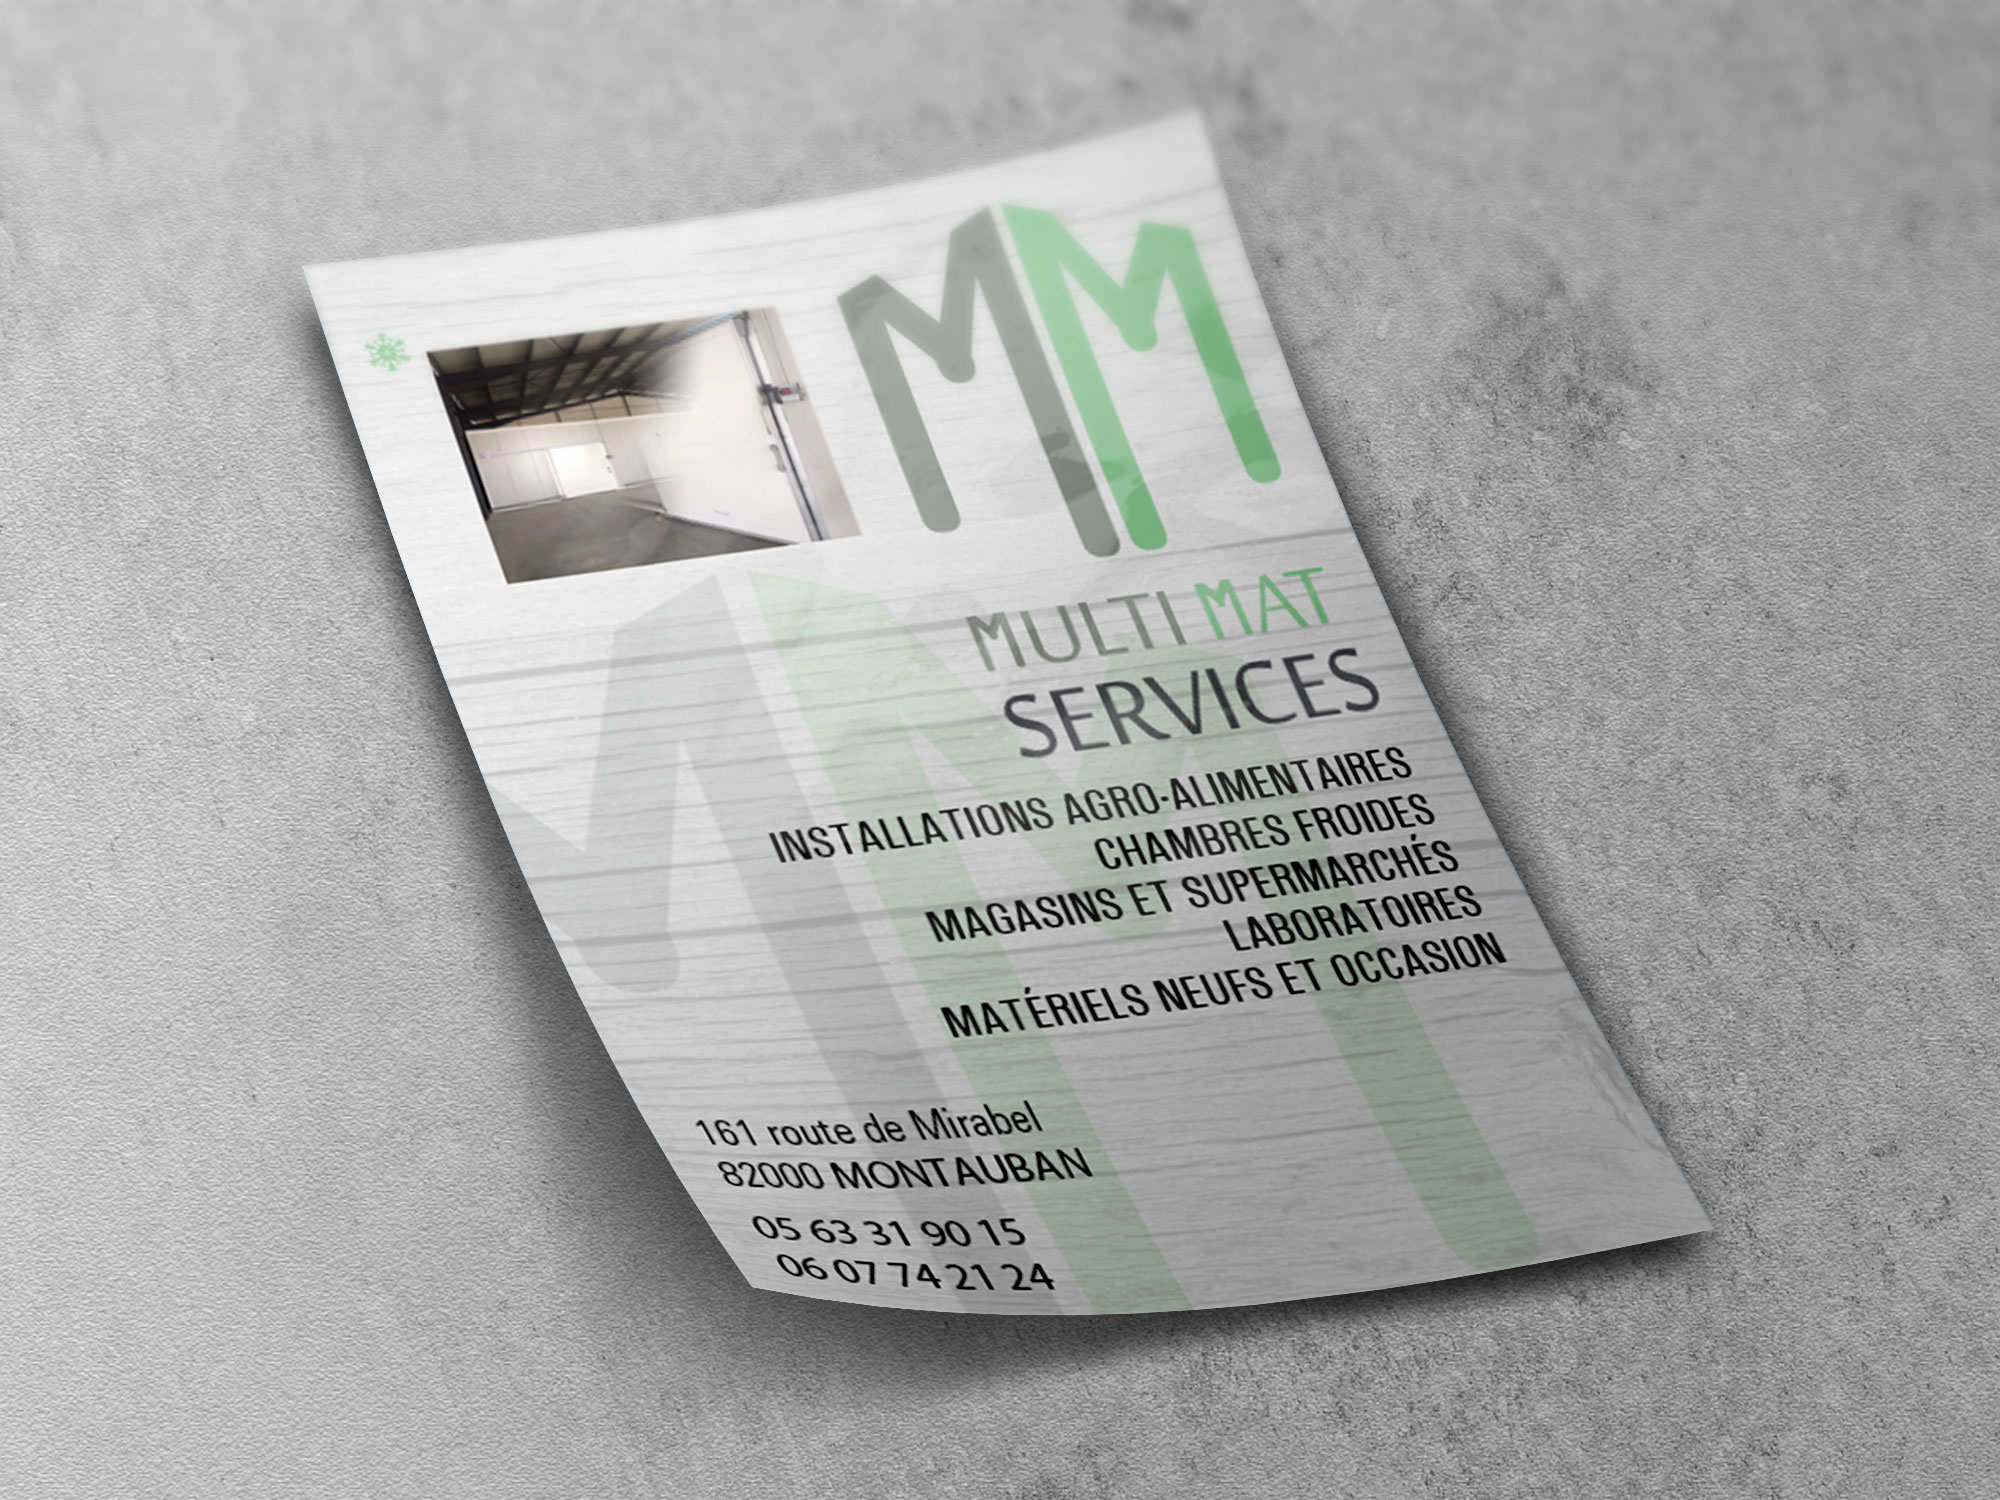 multimatservices